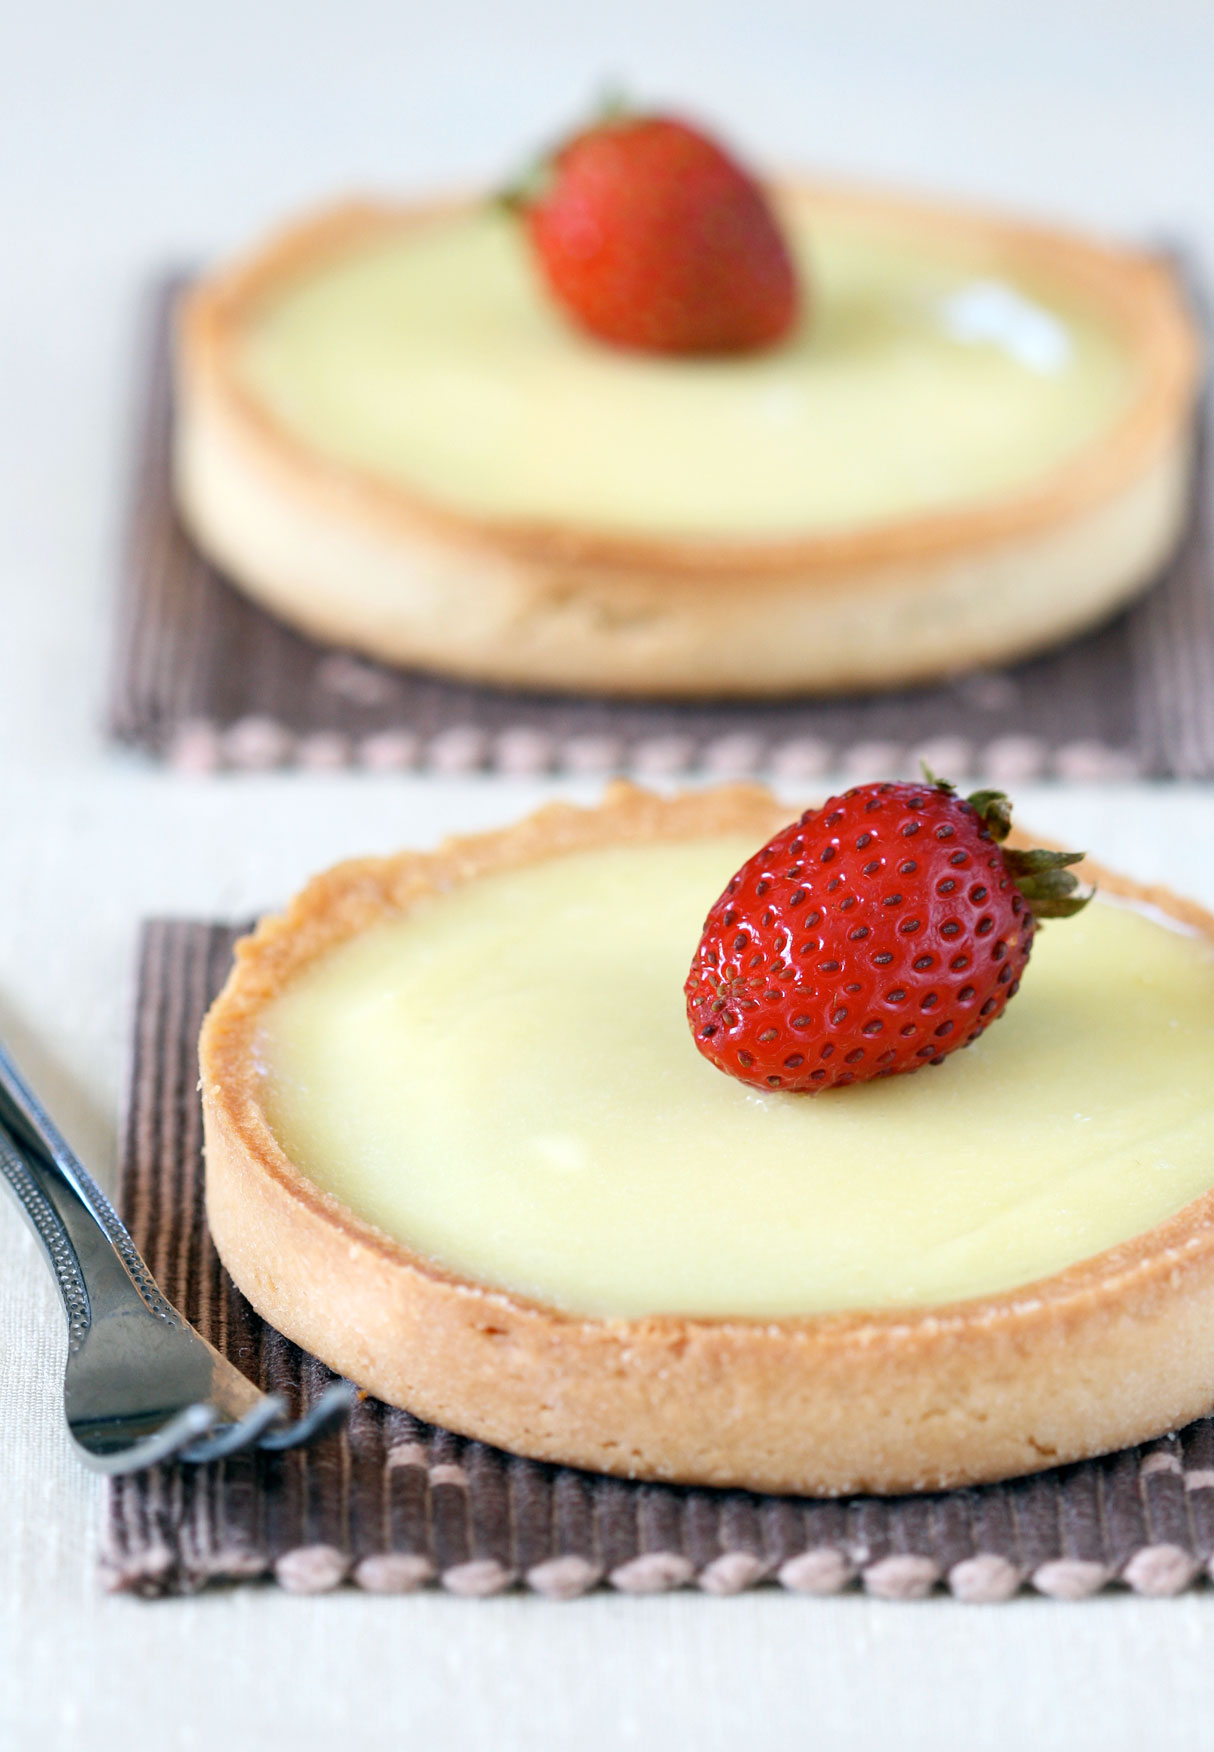 Meyer Lemon Tart With A Layer Of Chocolate Recipes — Dishmaps